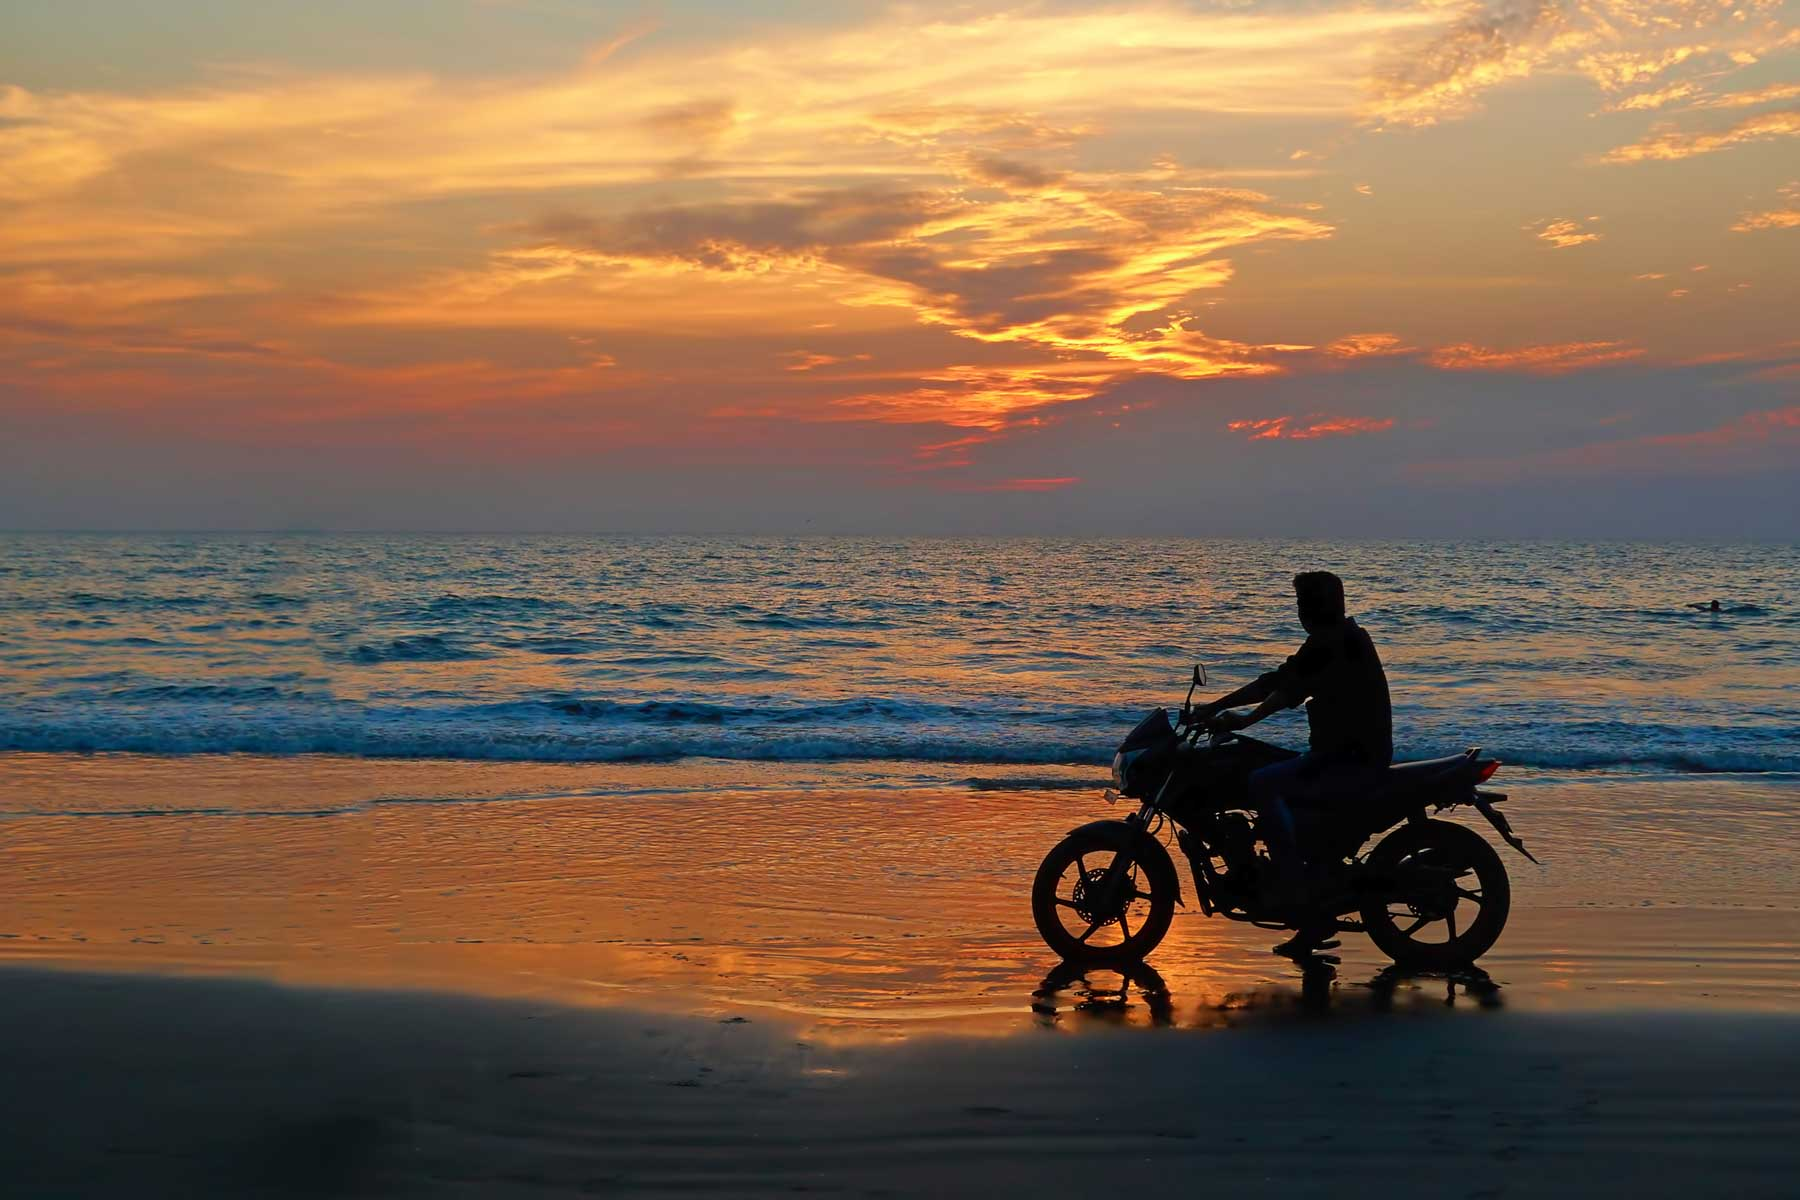 Motorcyclist at sunset on the beach.